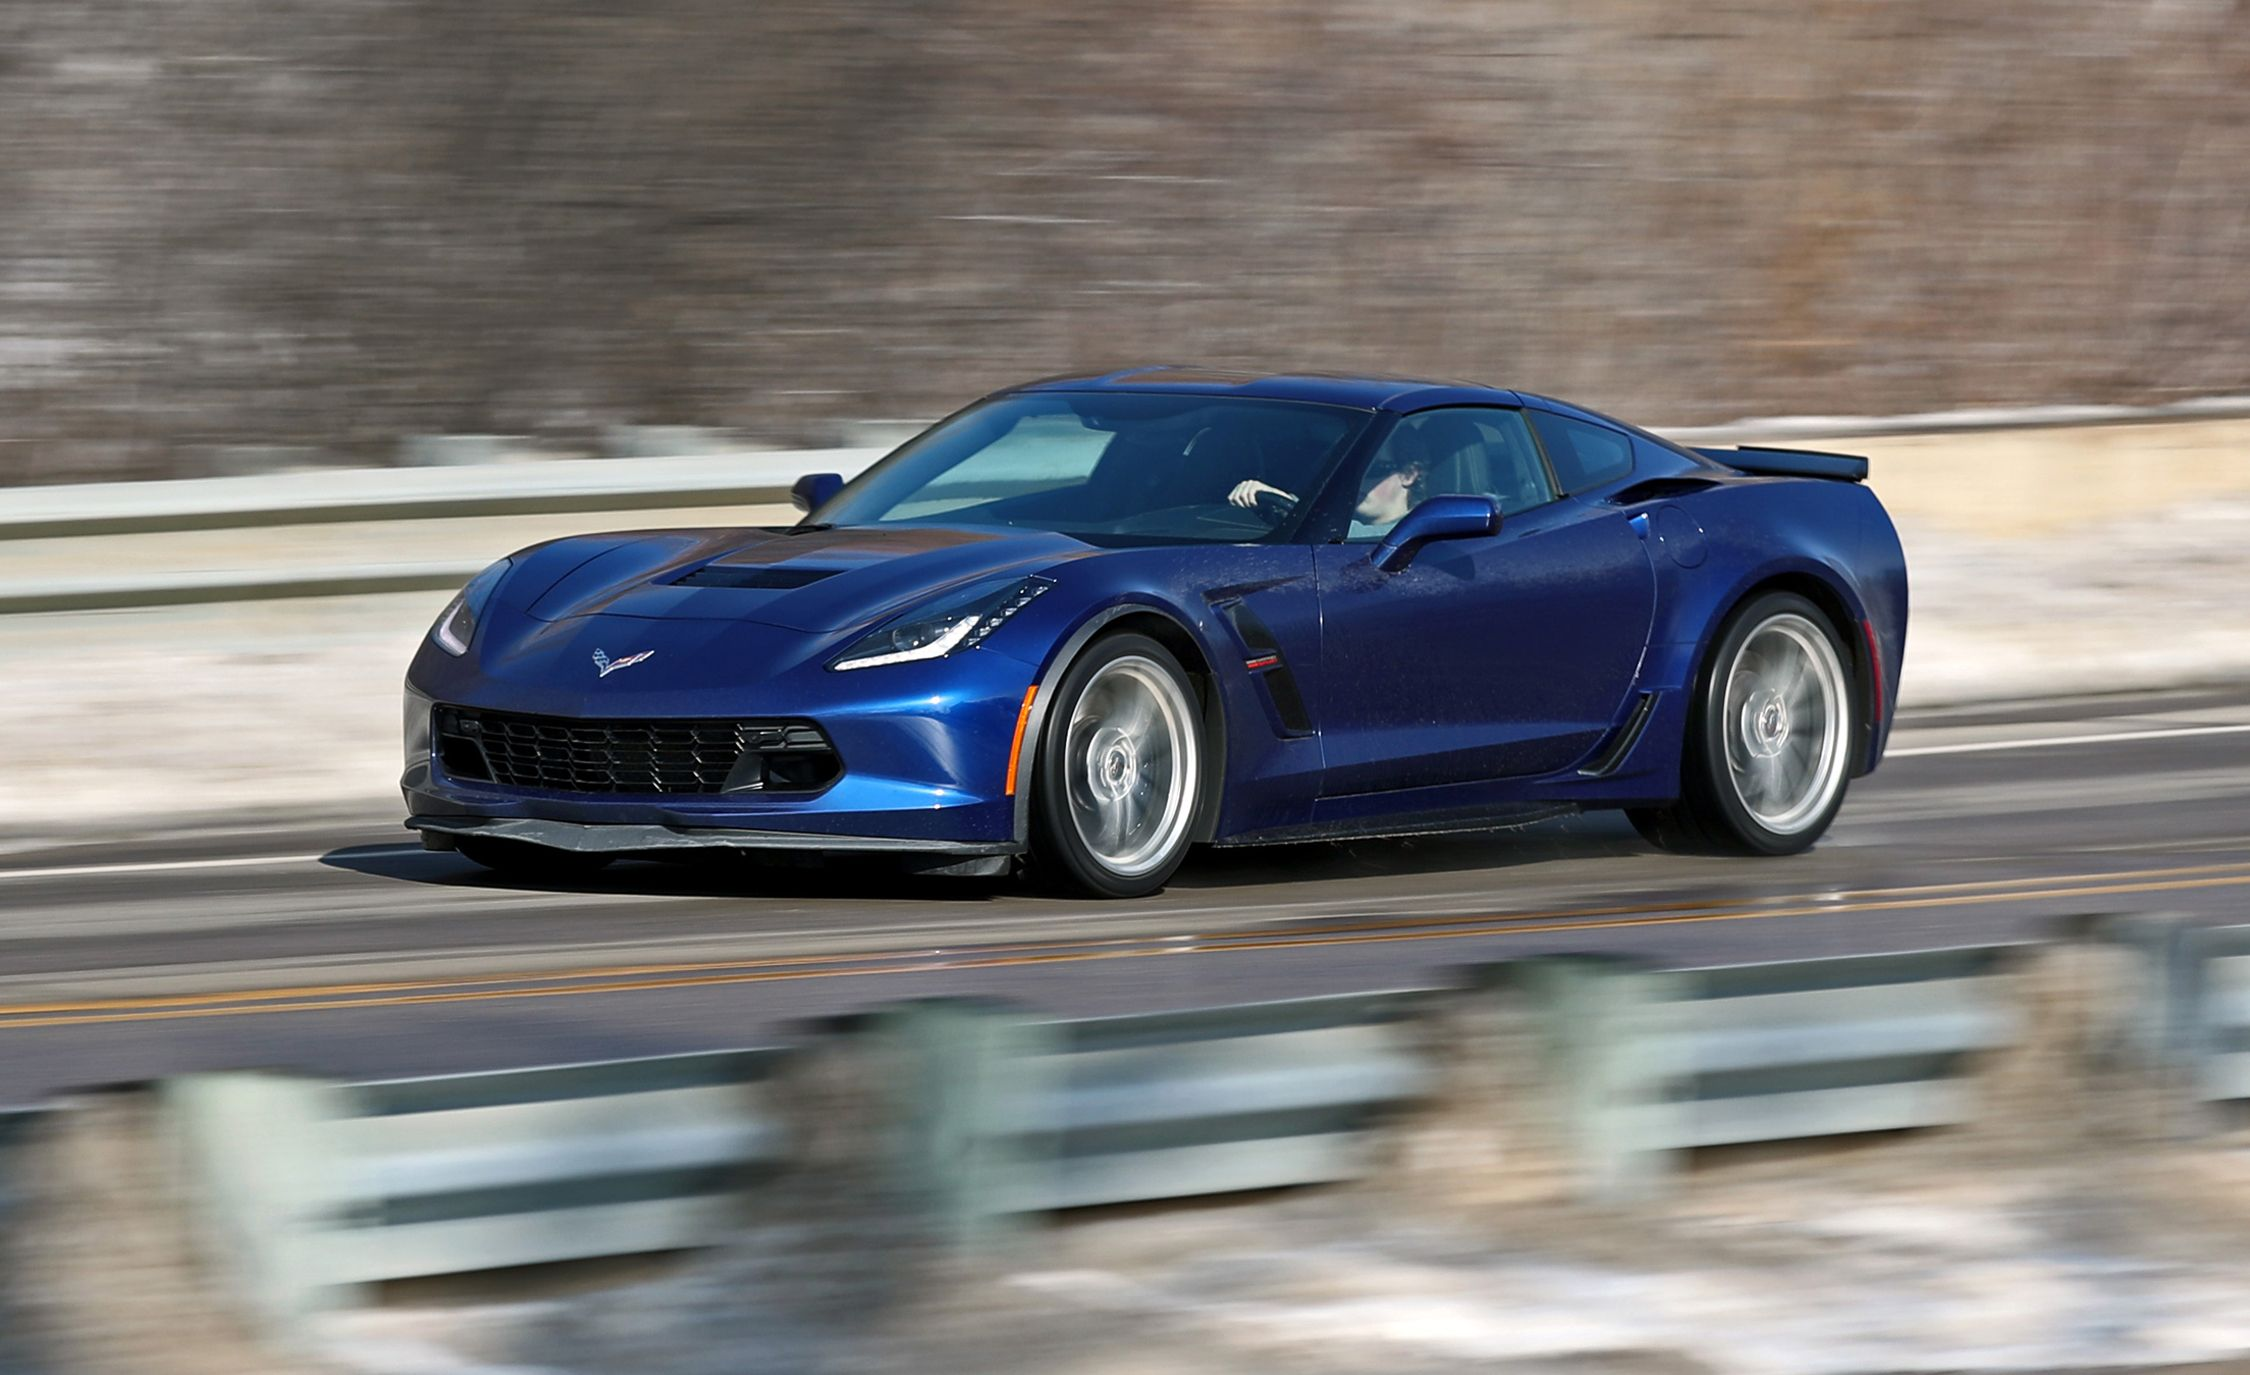 2017 Chevrolet Corvette Grand Sport Long Term Test 20 000 Mile Update Review Car And Driver